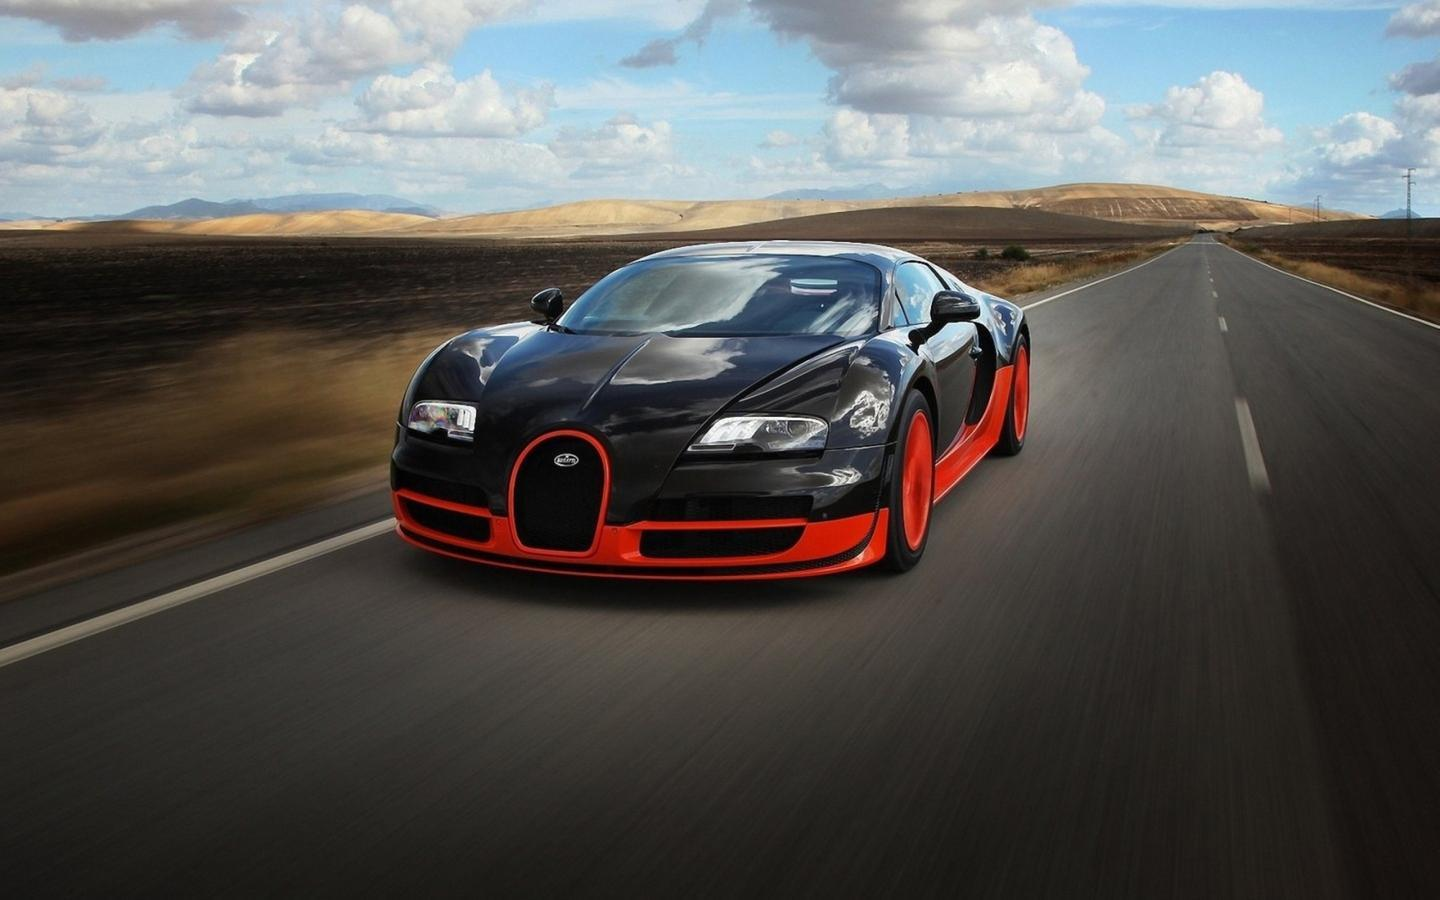 bugatti veyron wallpapers hd wallpaper cave. Black Bedroom Furniture Sets. Home Design Ideas